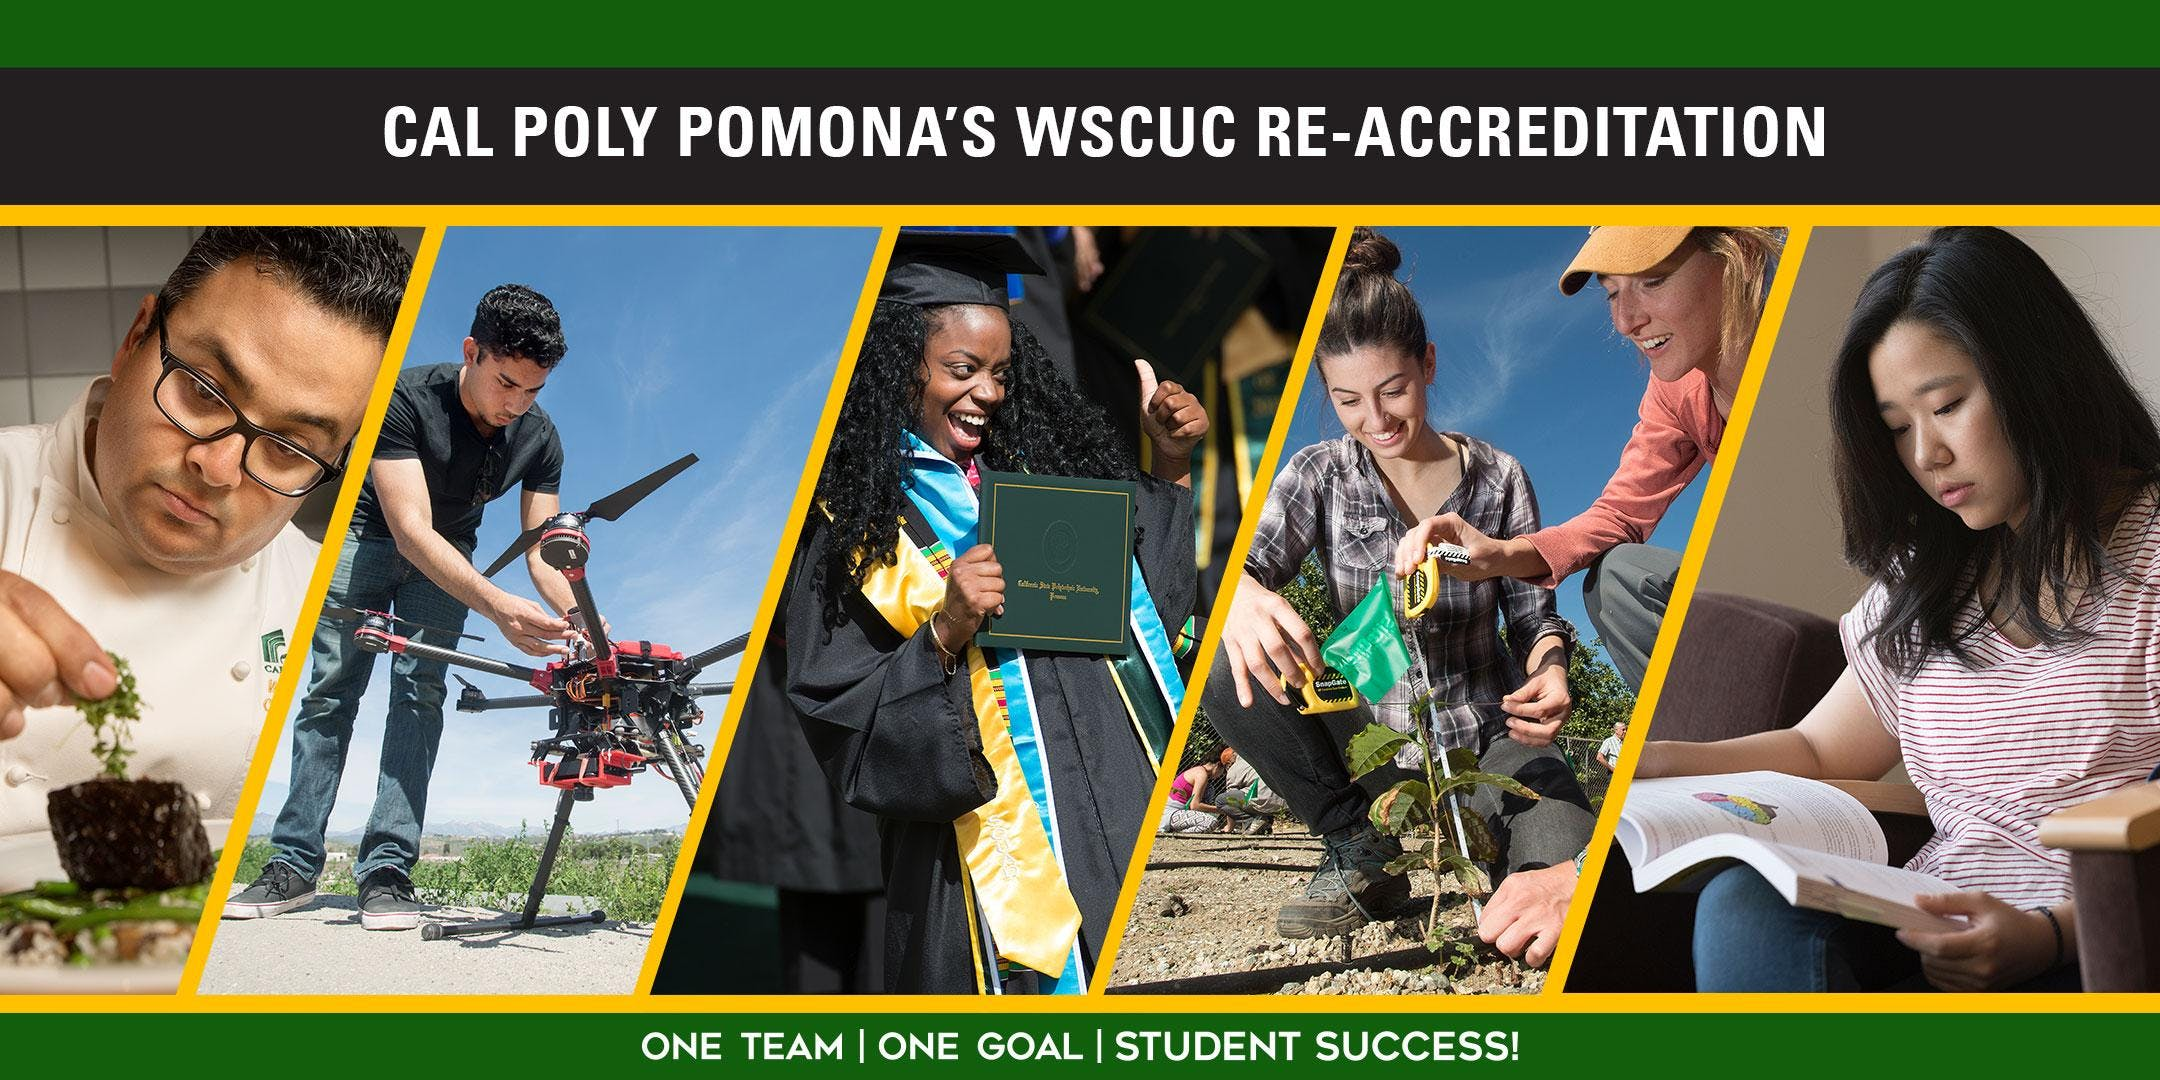 Wscuc Town Hall Meeting Essay   Student Success  Westmont Wscuc Town Hall Meeting Essay   Student Success